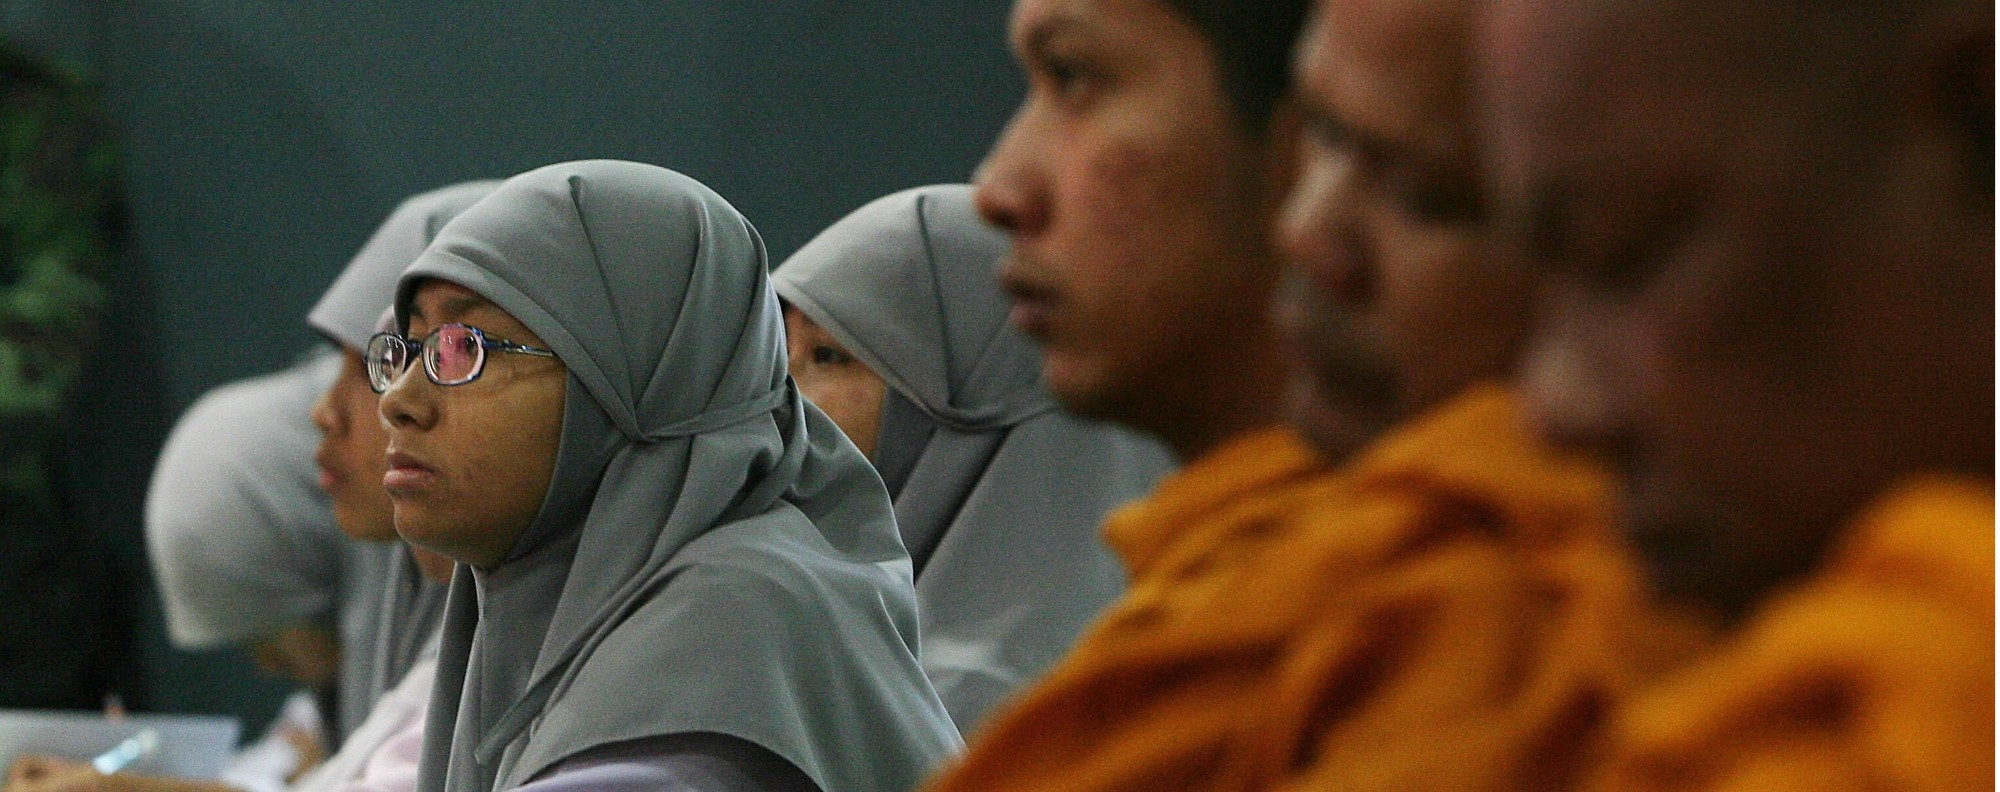 Monks and Muslims at an interfaith meeting. Photo: AFP